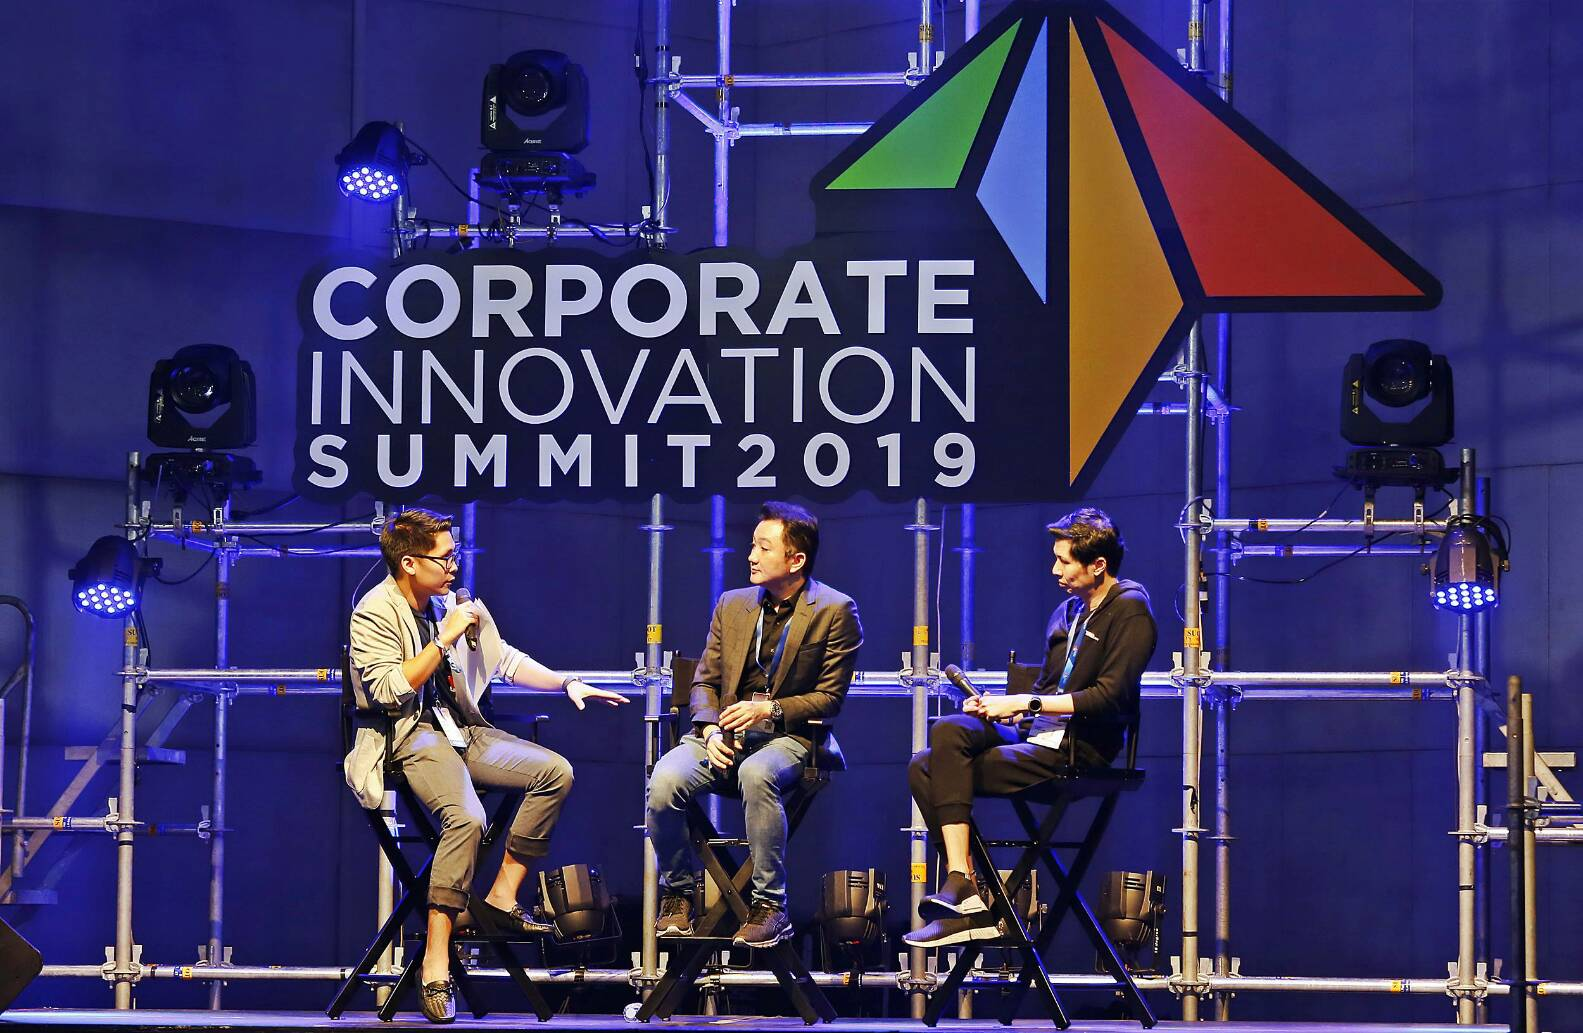 Corporate Innovation Summit 2019